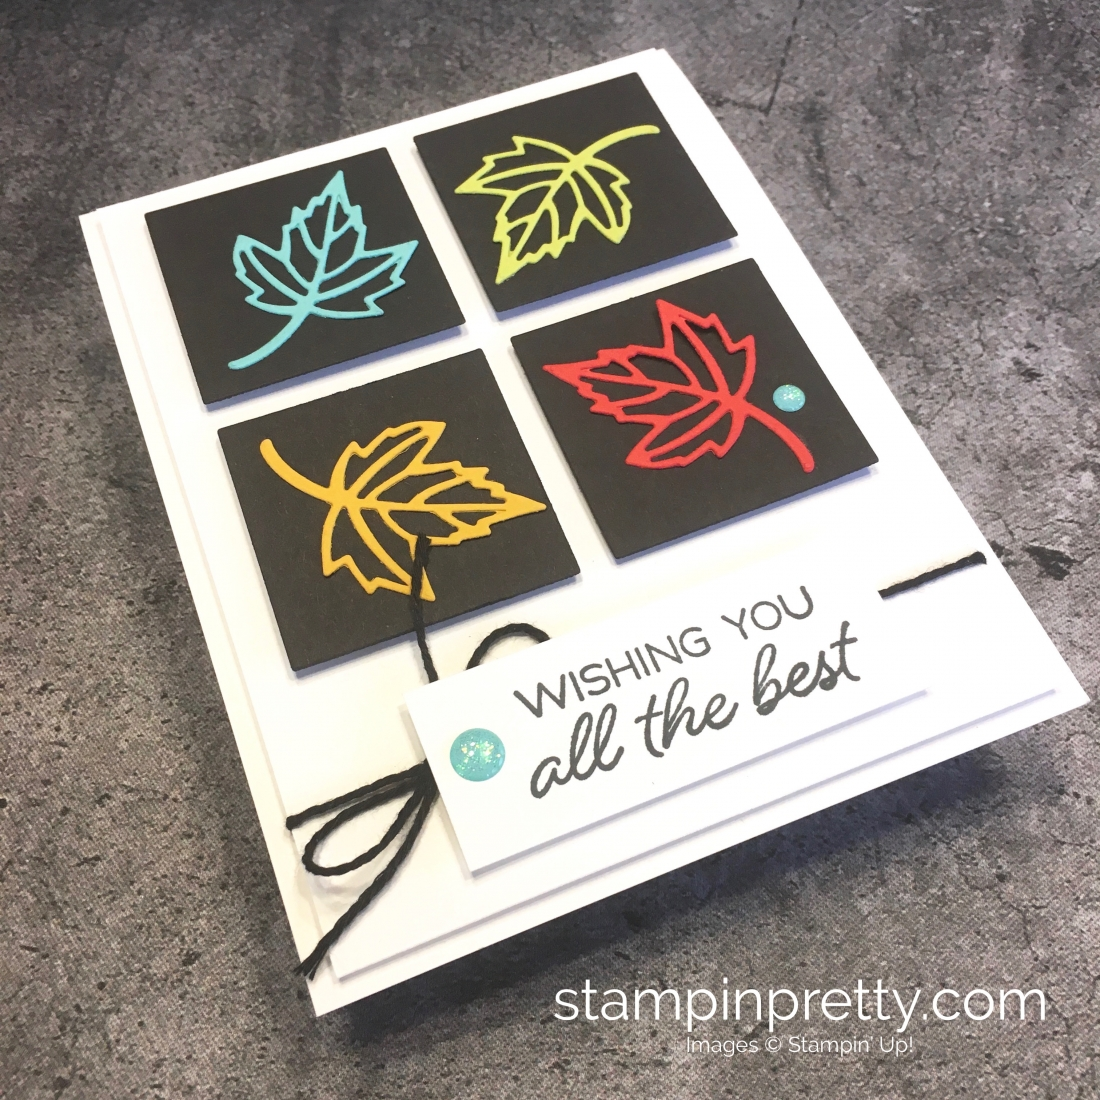 Create A Simple Leaf Card Using Stampin Up Blended Seasons Stamp Set Stitched Dies